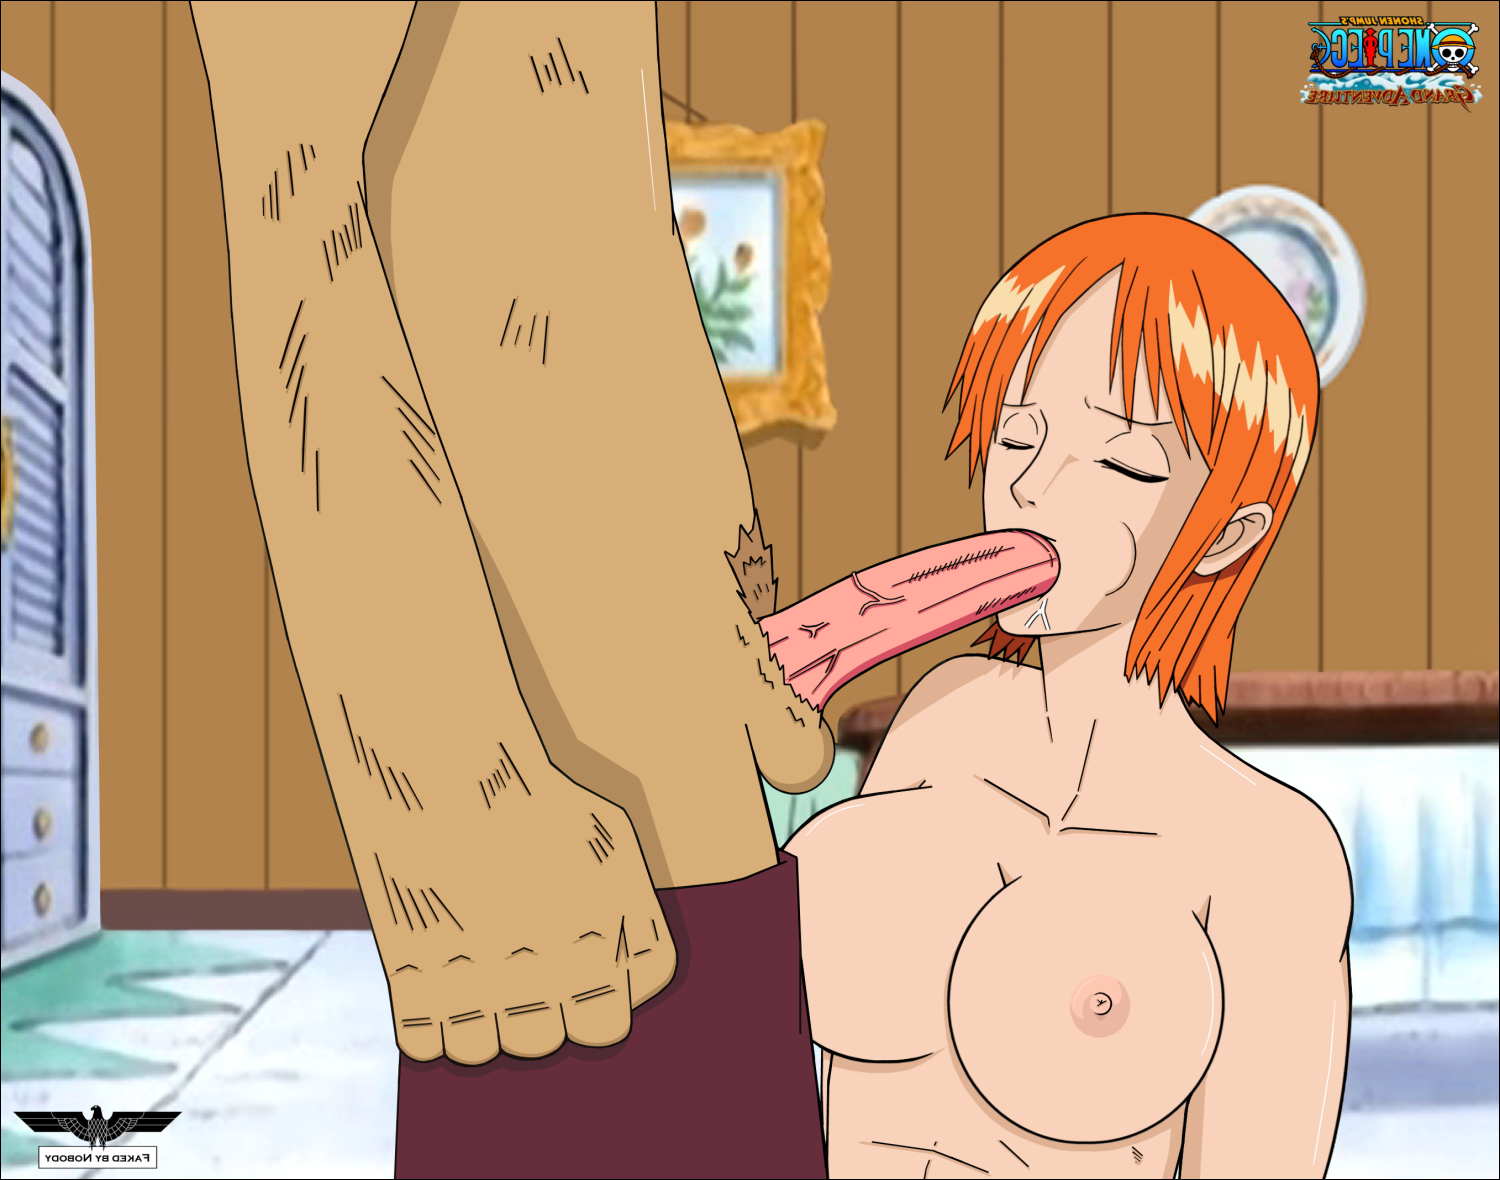 Toon sex pic ##000130616033 abs anthro breasts chopper closed eyes eyes closed fake fellatio female kneeling large penis male muscle tone muscular female nami nipples no bra nobody (artist) nude on knees one piece orange hair pants down penis perky breasts saliva short-hair small areola small nipples testicles tony tony chopper topless veiny penis